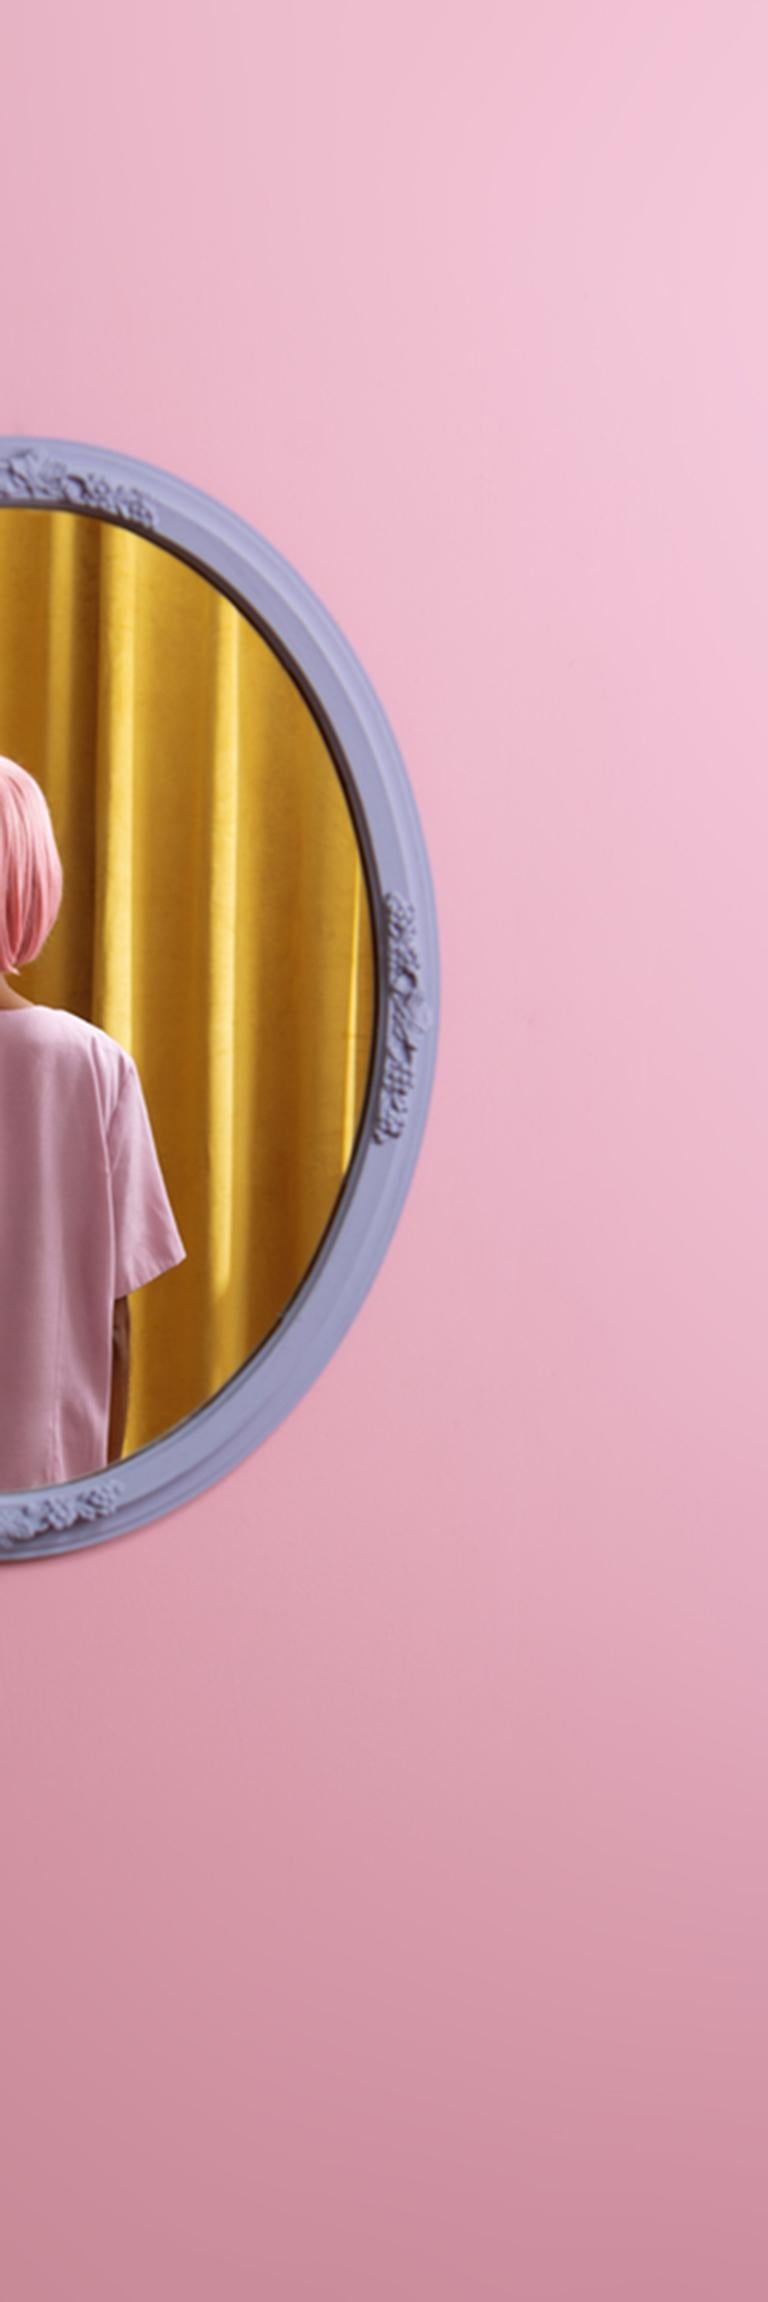 I don't see myself - Abstract pop pink & yellow self-portrait in oval mirror - Contemporary Photograph by Karen Navarro